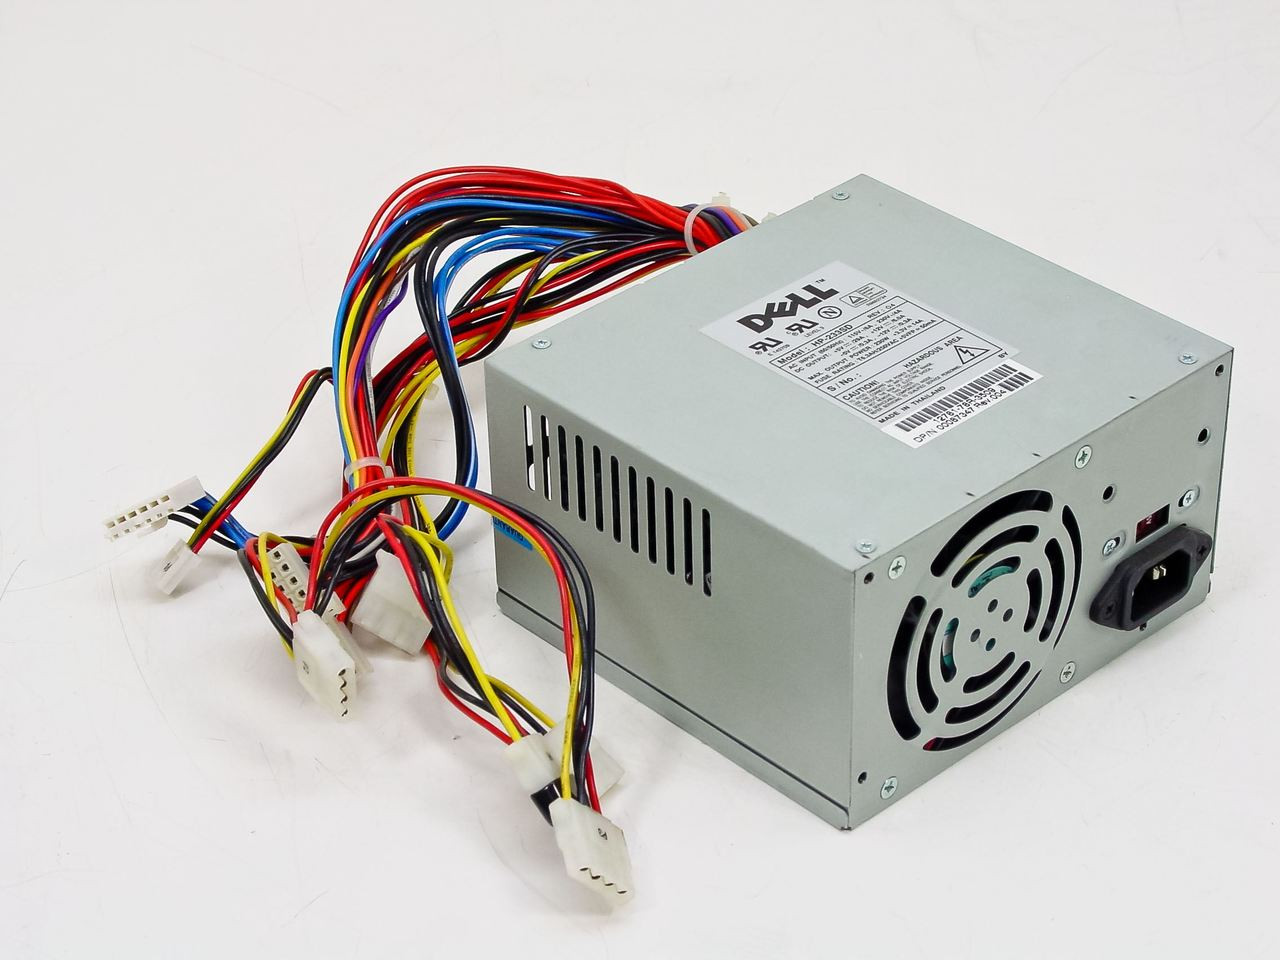 medium resolution of power supply model h275p 01 wiring diagram supply dell power supply pinout diagram dell laptop power